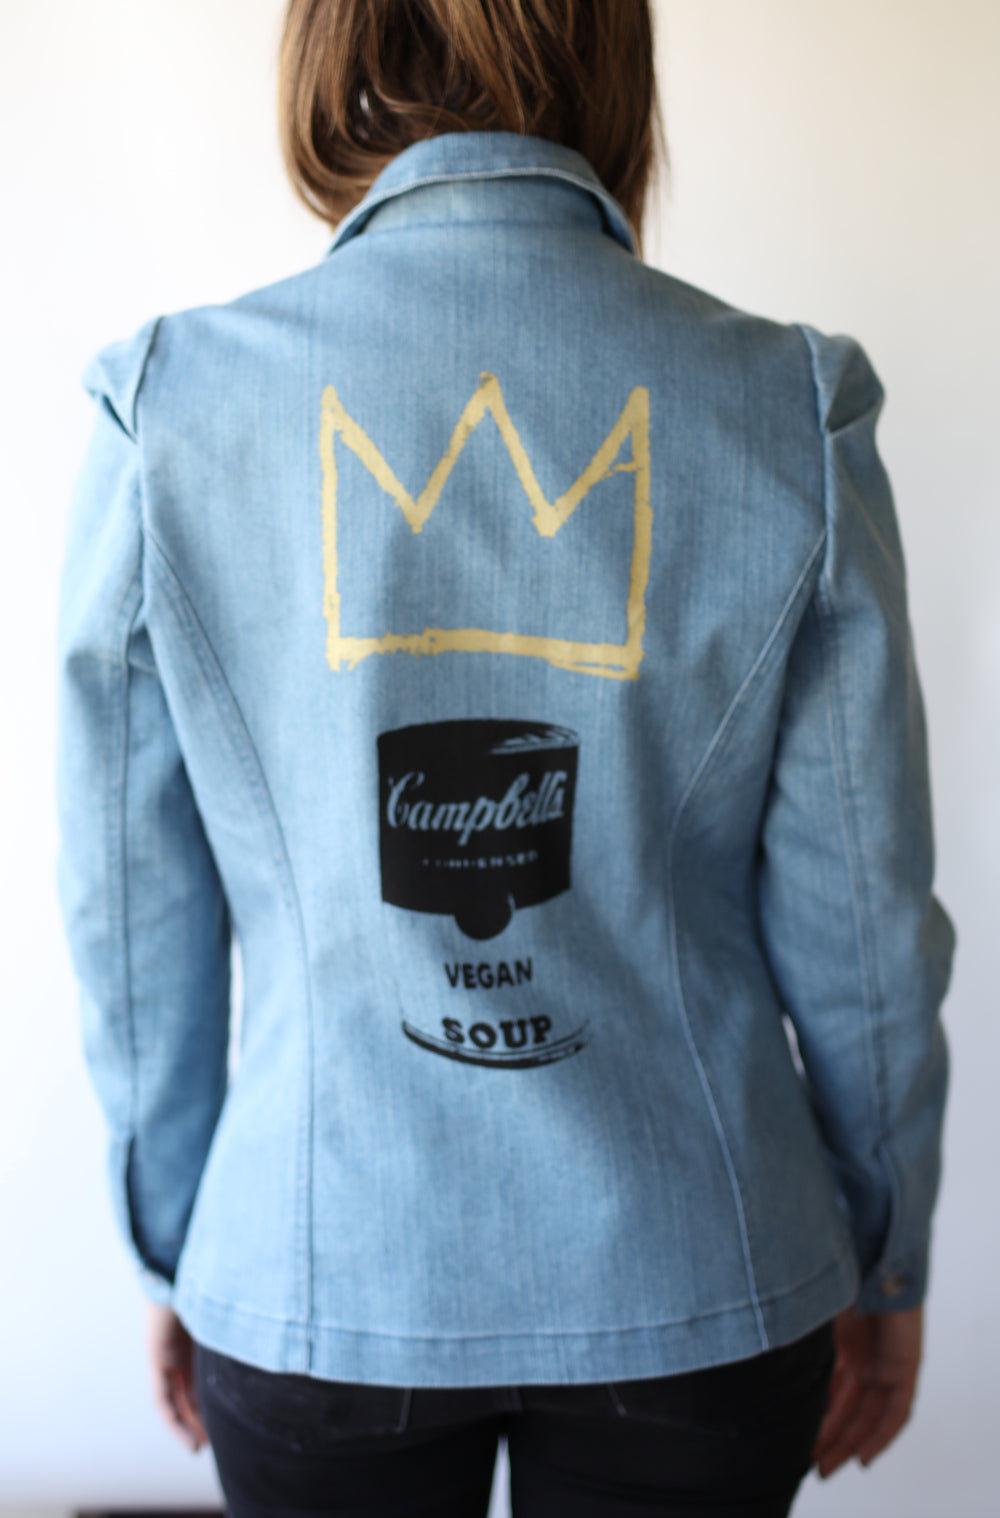 Haute Couture One of a Kind Up-cycled New Jacket a la Basquiat & Warhol Collab & Design by Jarod-Pi